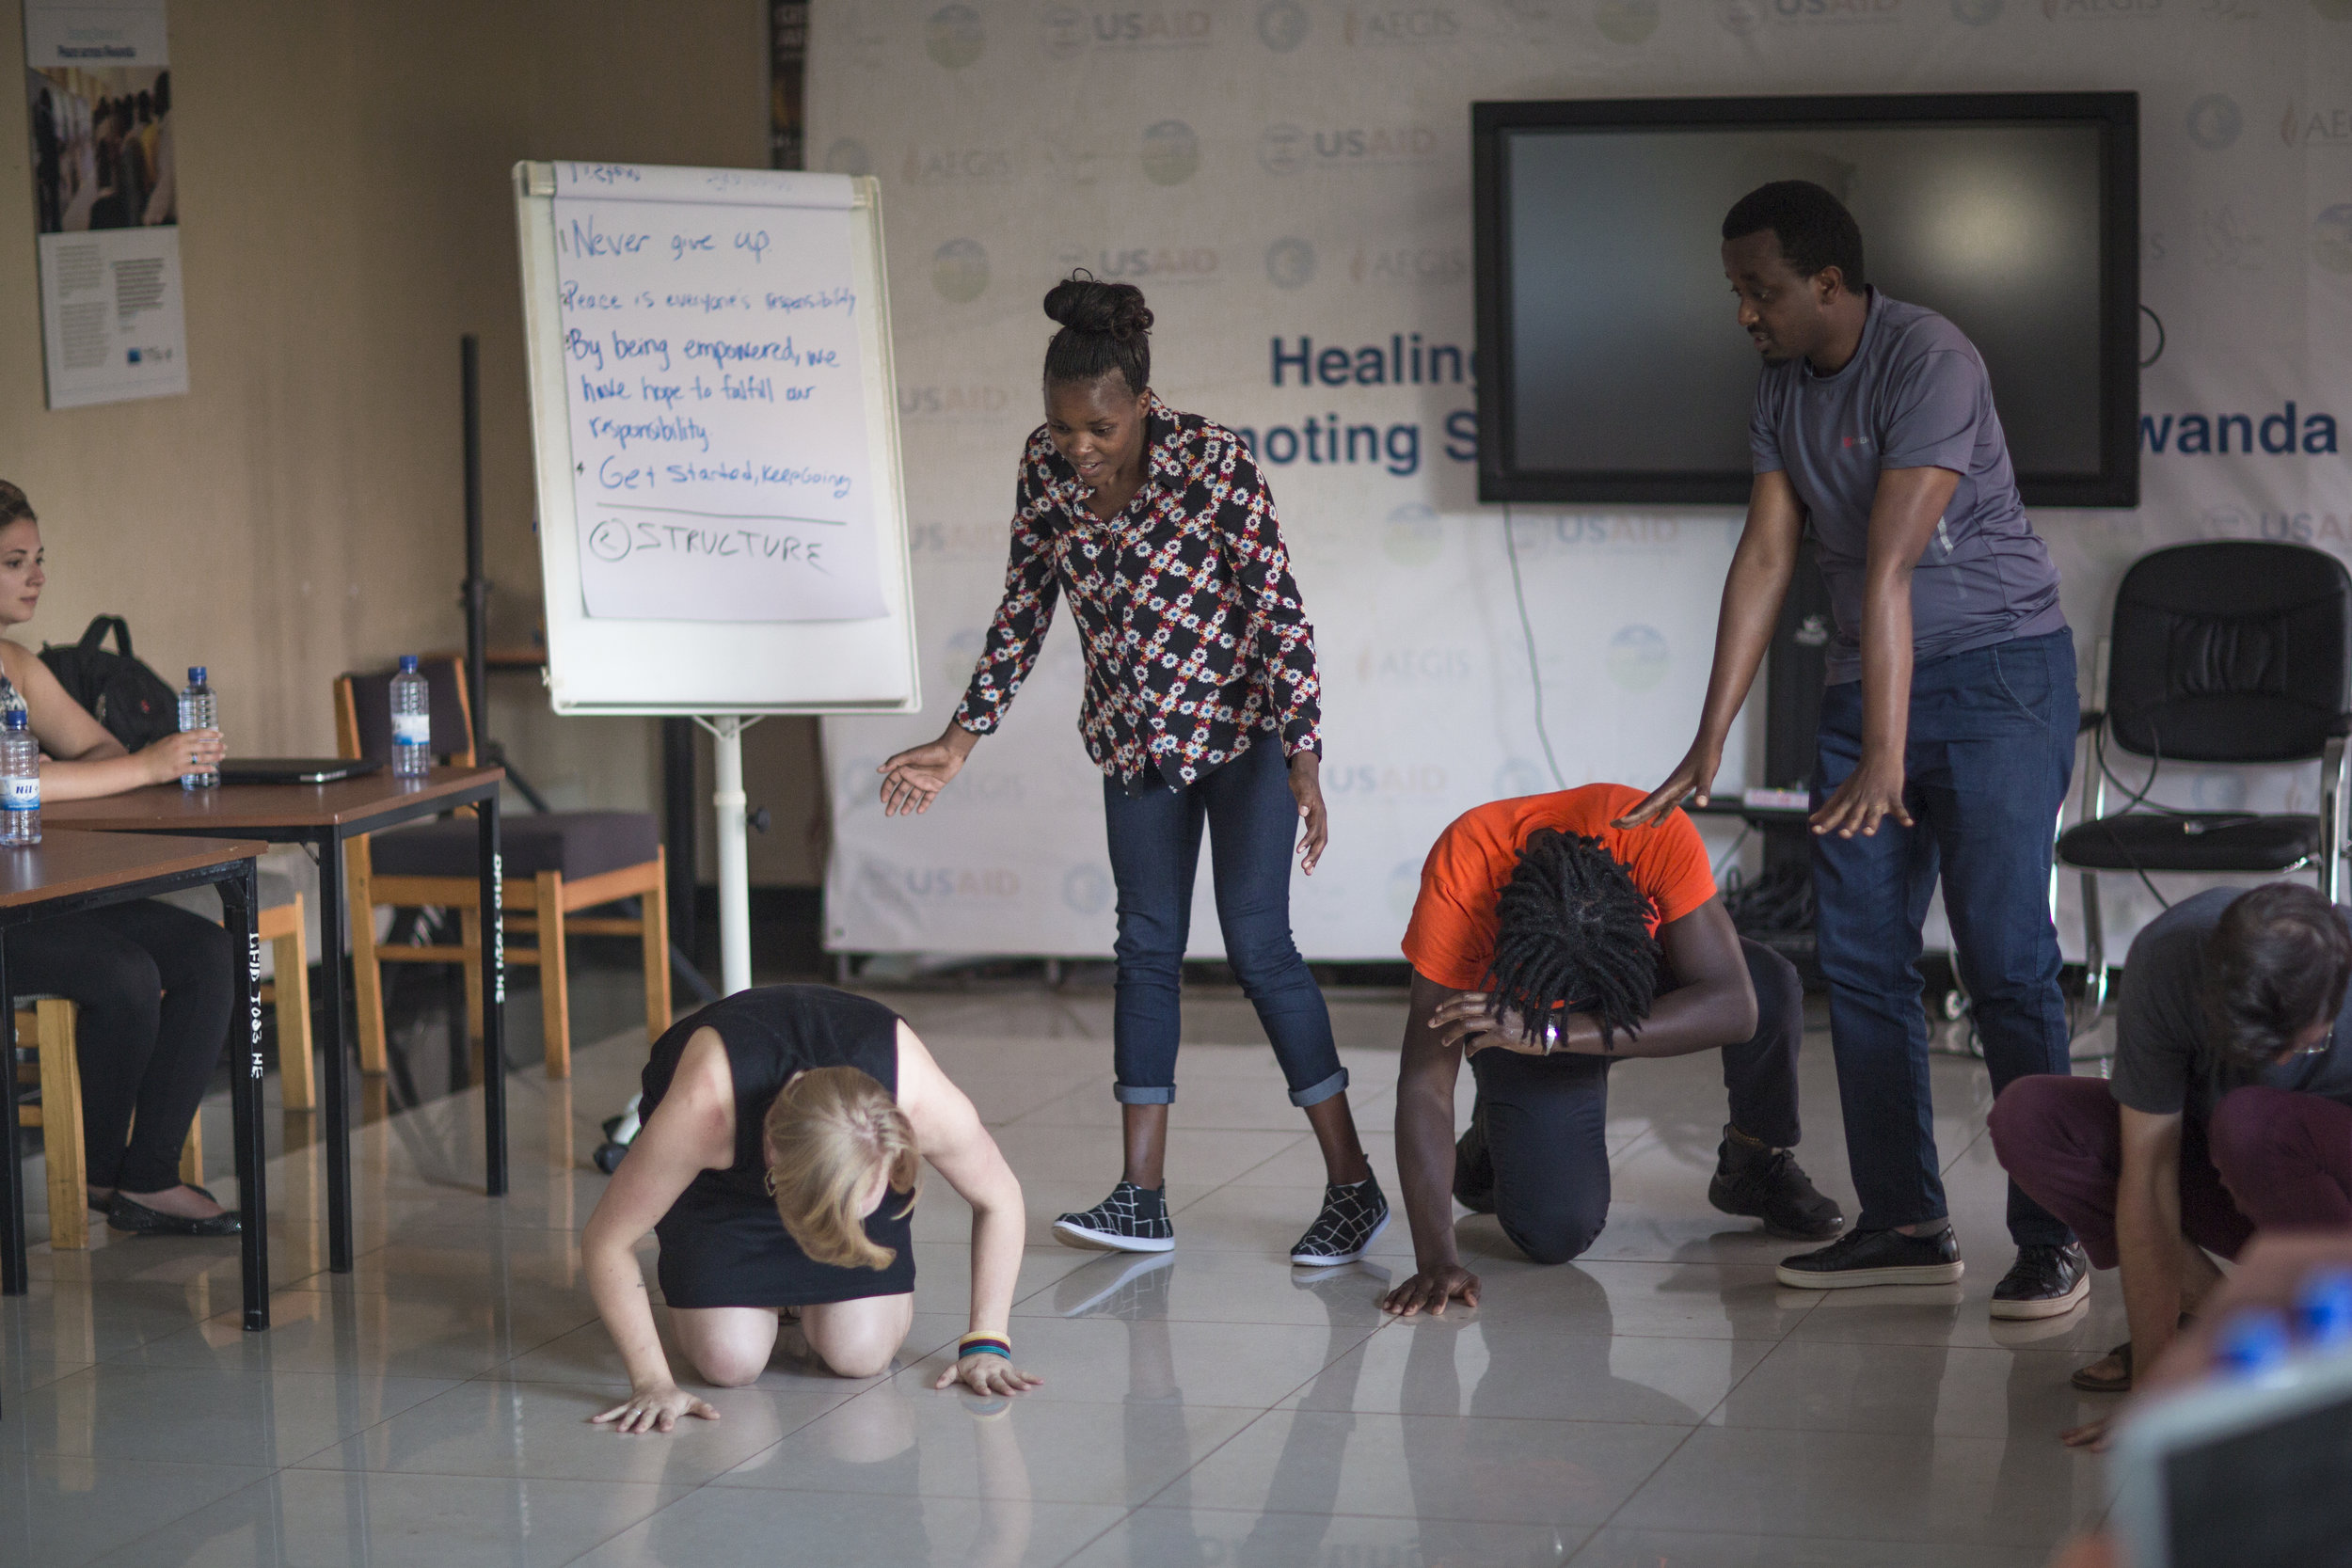 Workshop participant performance at the Kigali Genocide Memorial in Rwanda.